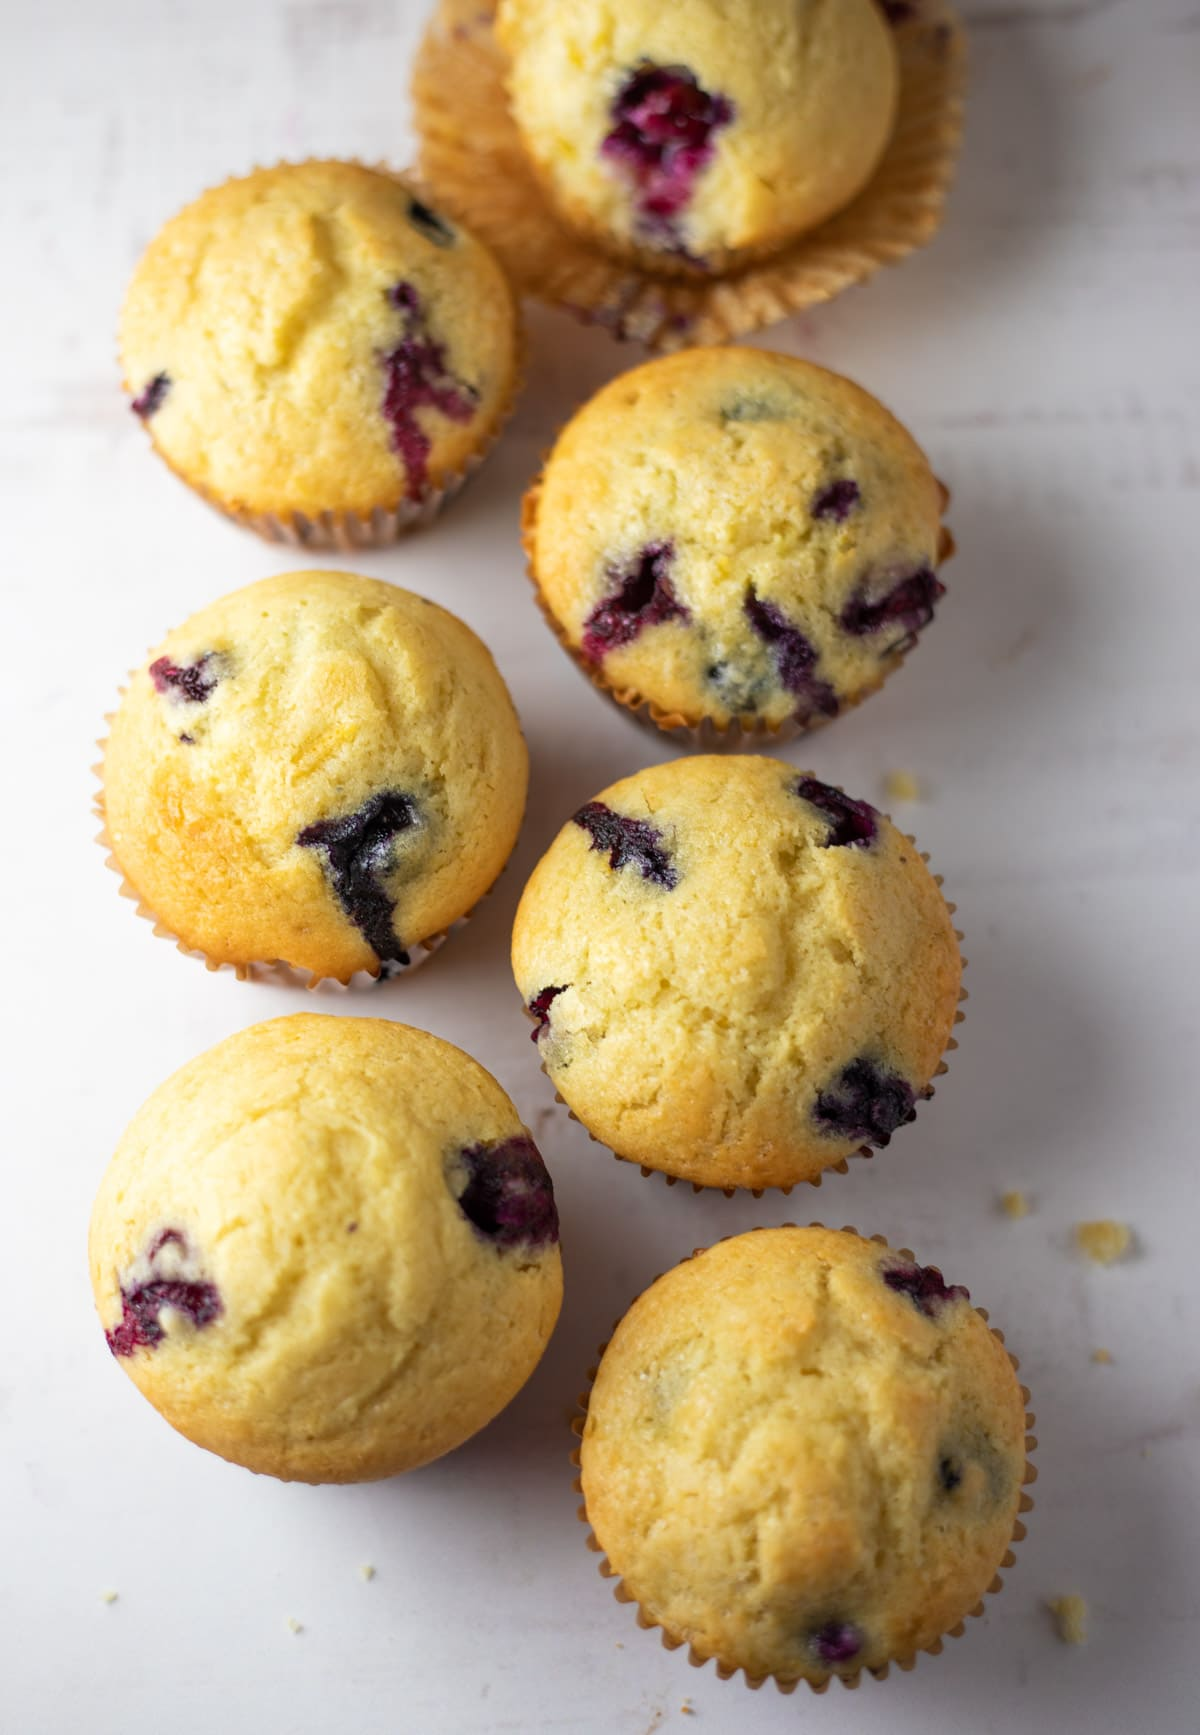 blueberry muffins on a white base